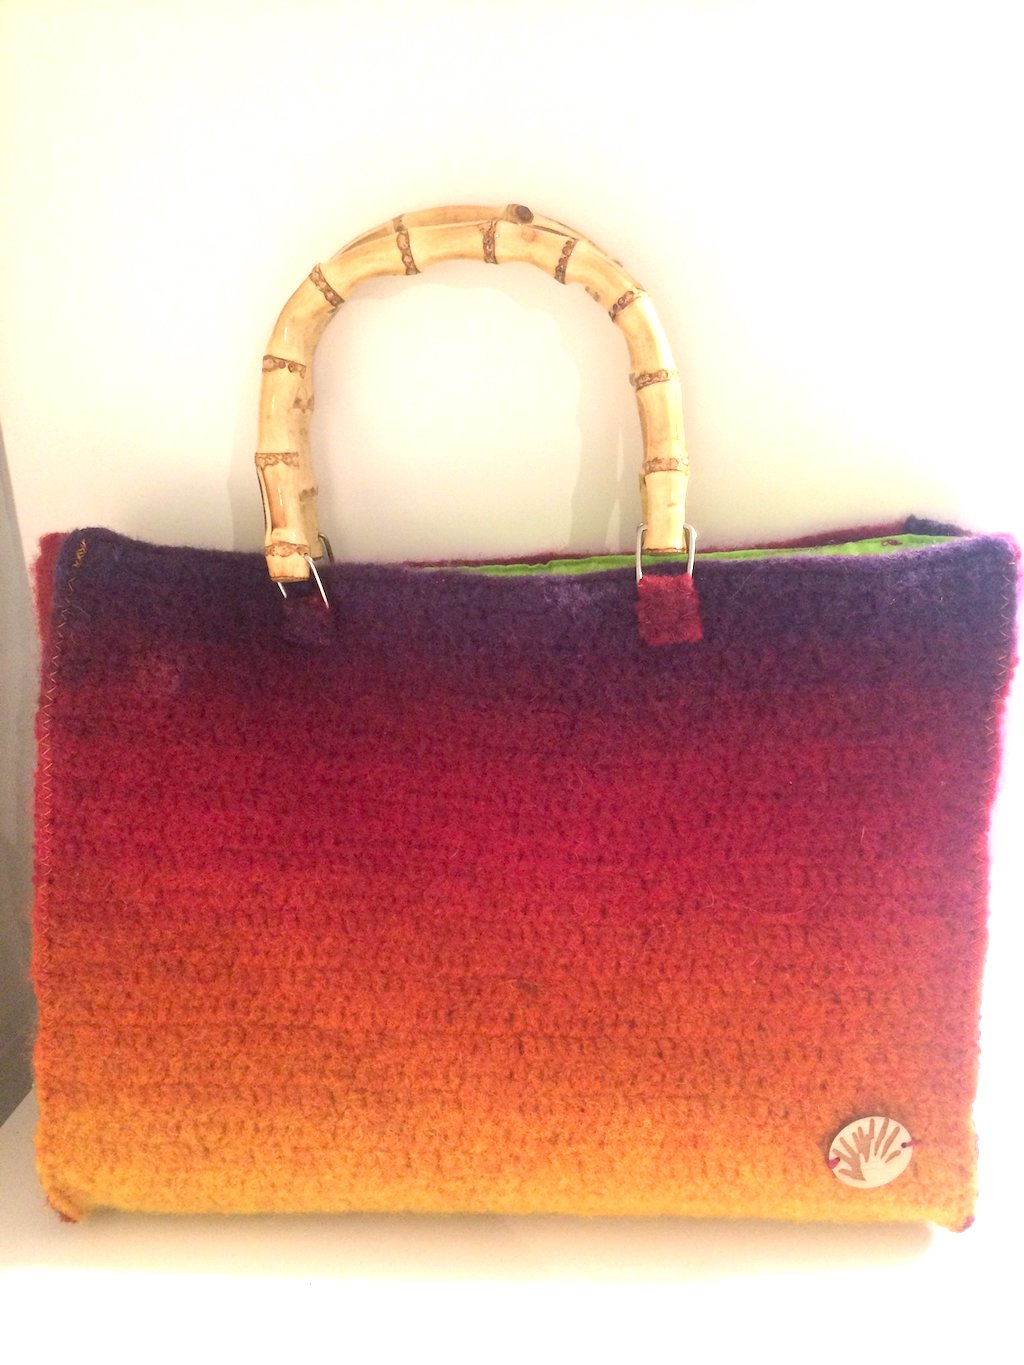 Tasche - rainbow bag